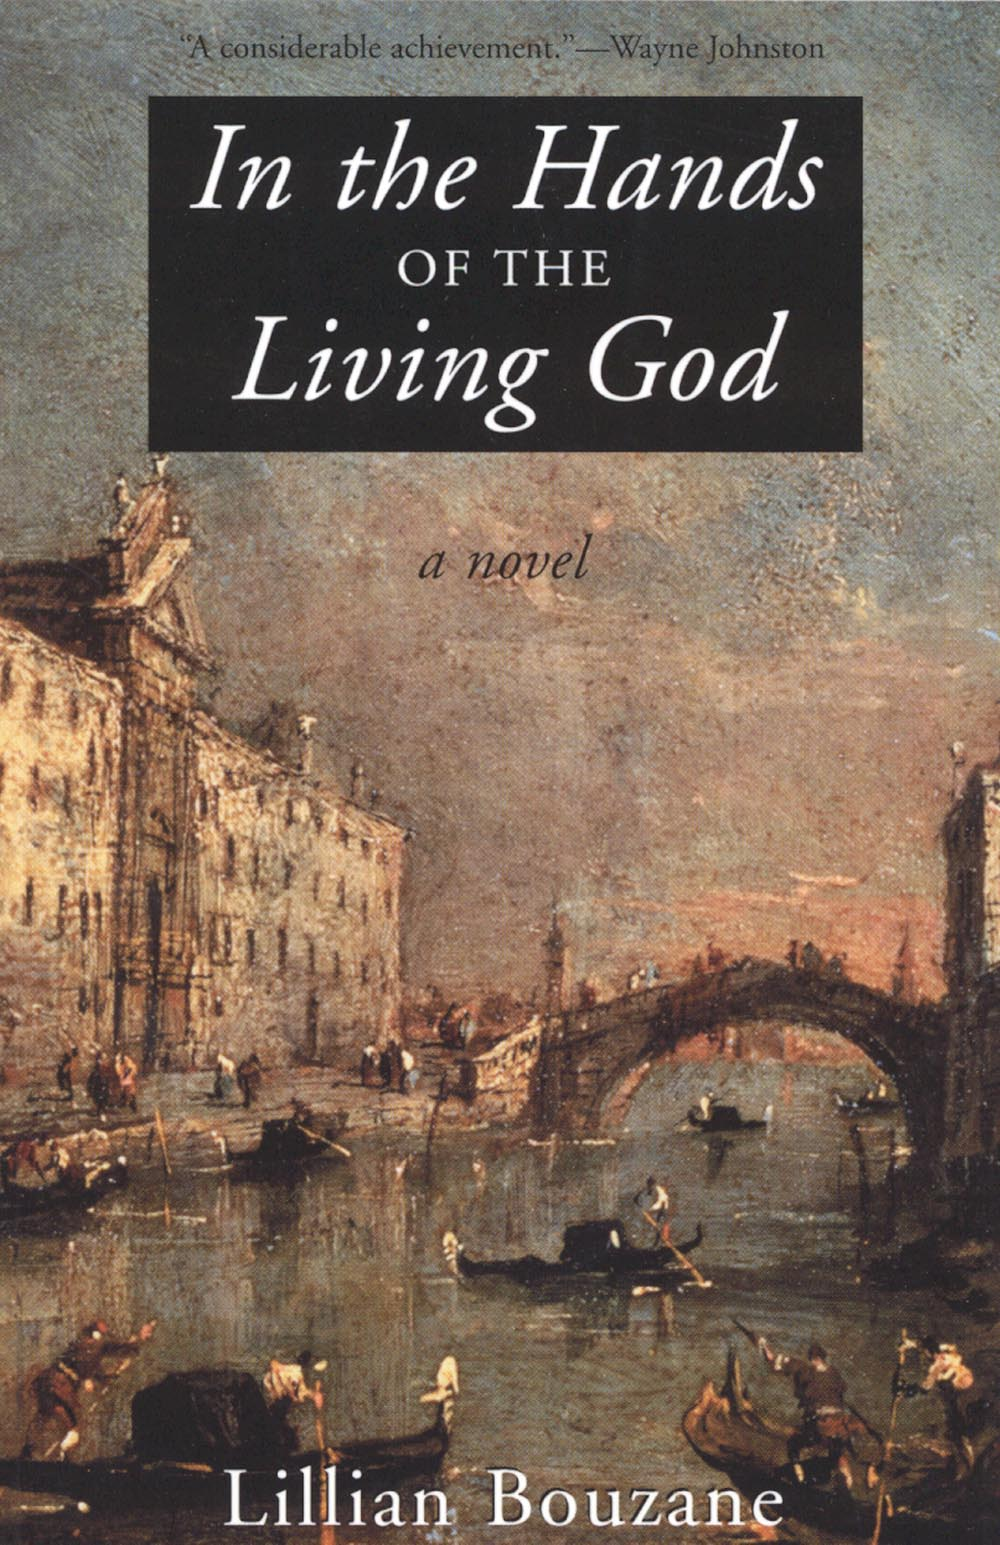 In the Hands of the Living God by Lillian Bouzane